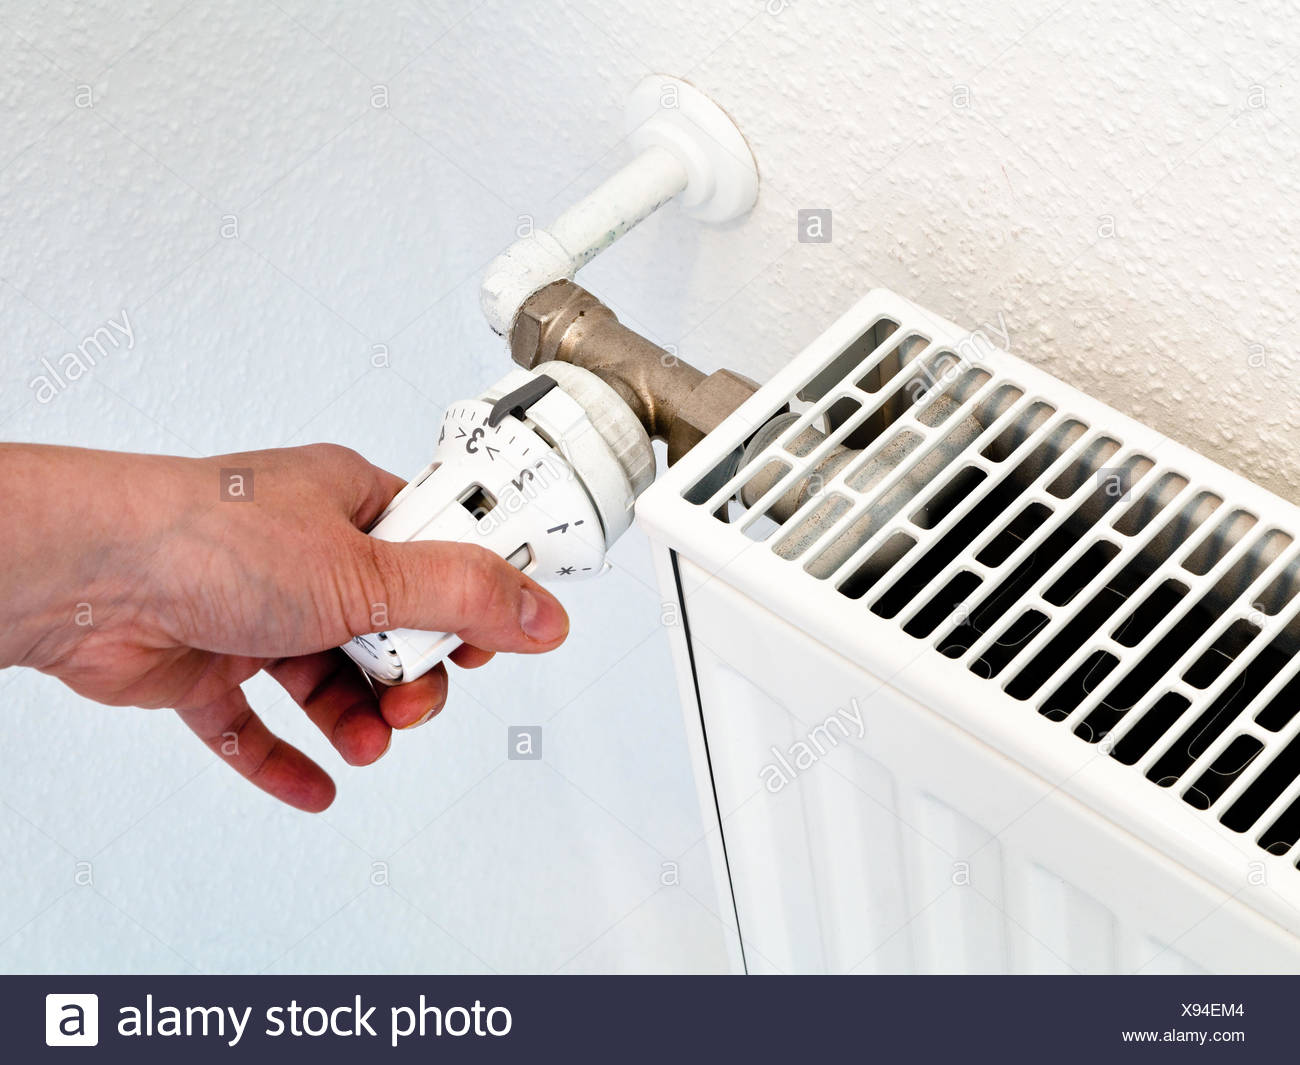 Individual Room Temperature Control Stock Photos Controller Of Home By Rotation The Radiator Thermostat Image